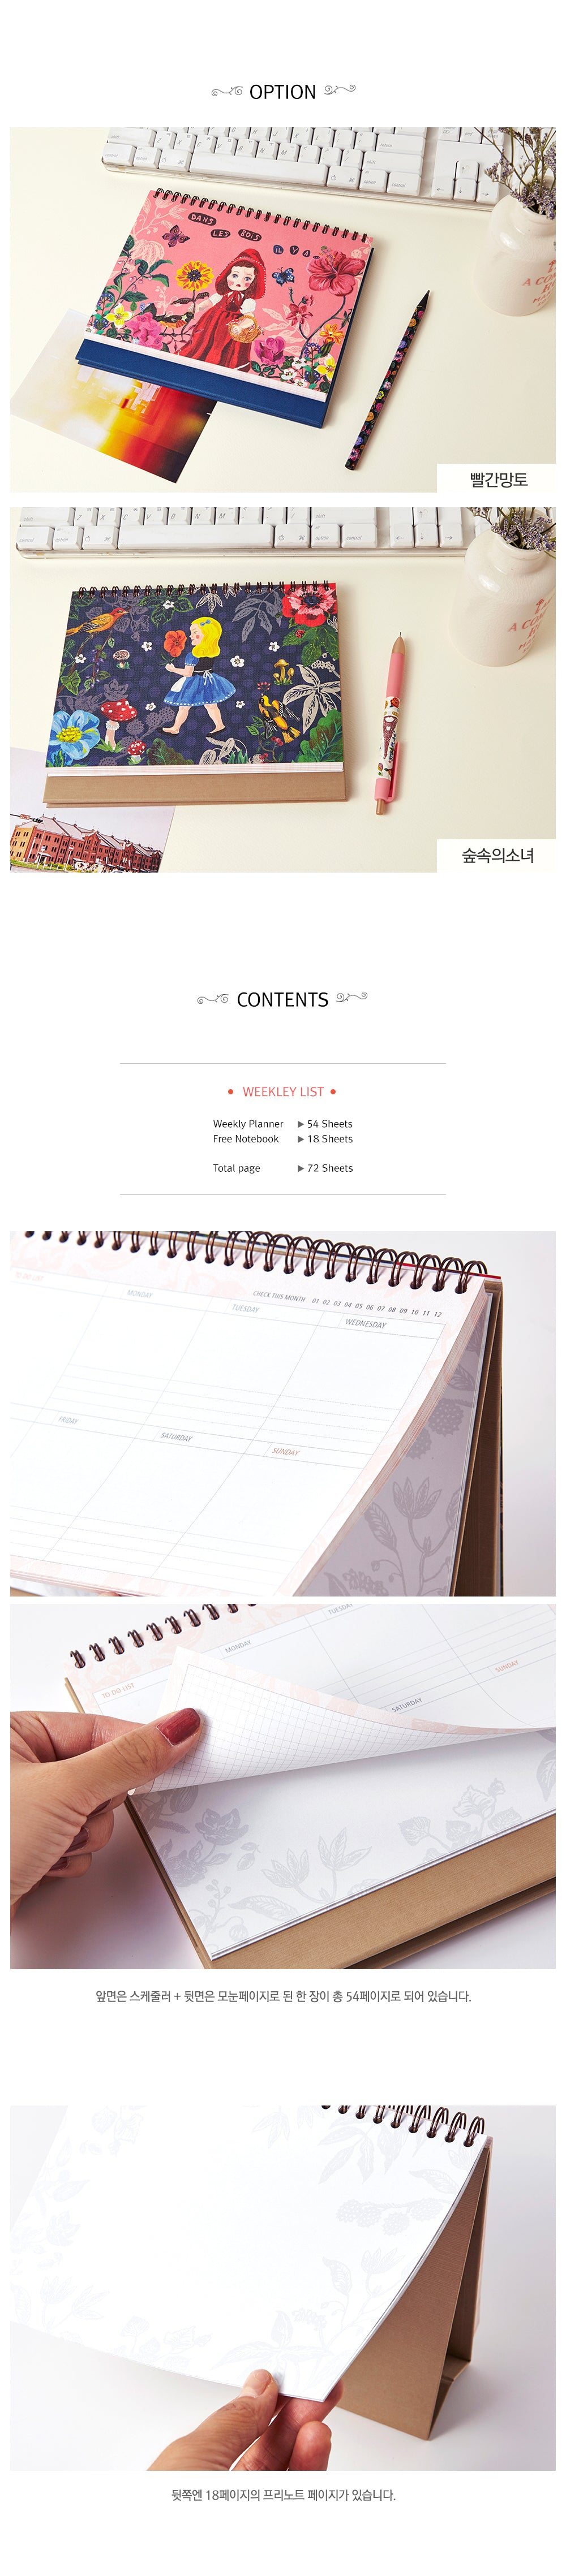 Weekly Desk Scheduler Nathalie Lété - Red cape - NL9257